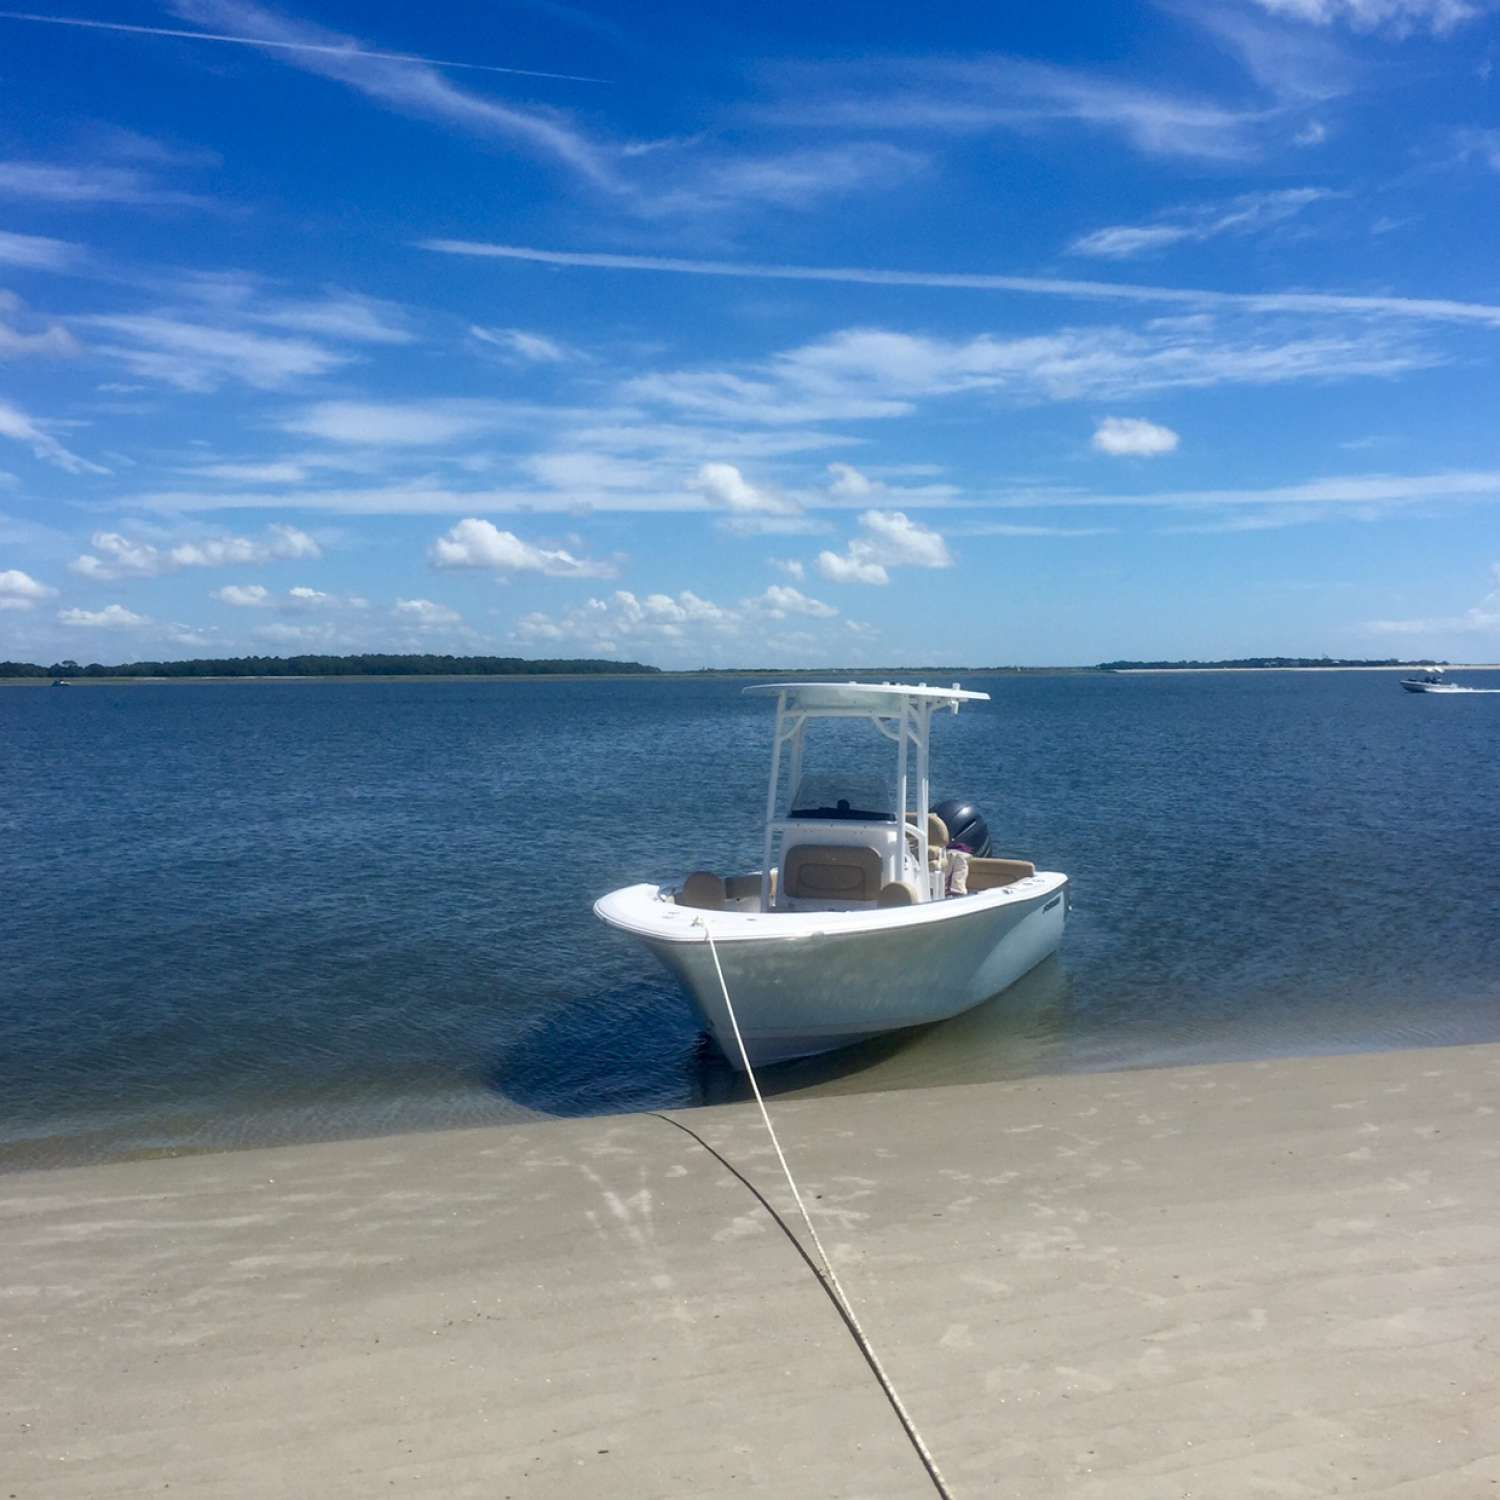 Title: Beach Day - On board their Sportsman Heritage 211 Center Console - Location: Charleston, South Carolina. Participating in the Photo Contest #SportsmanOctober2016